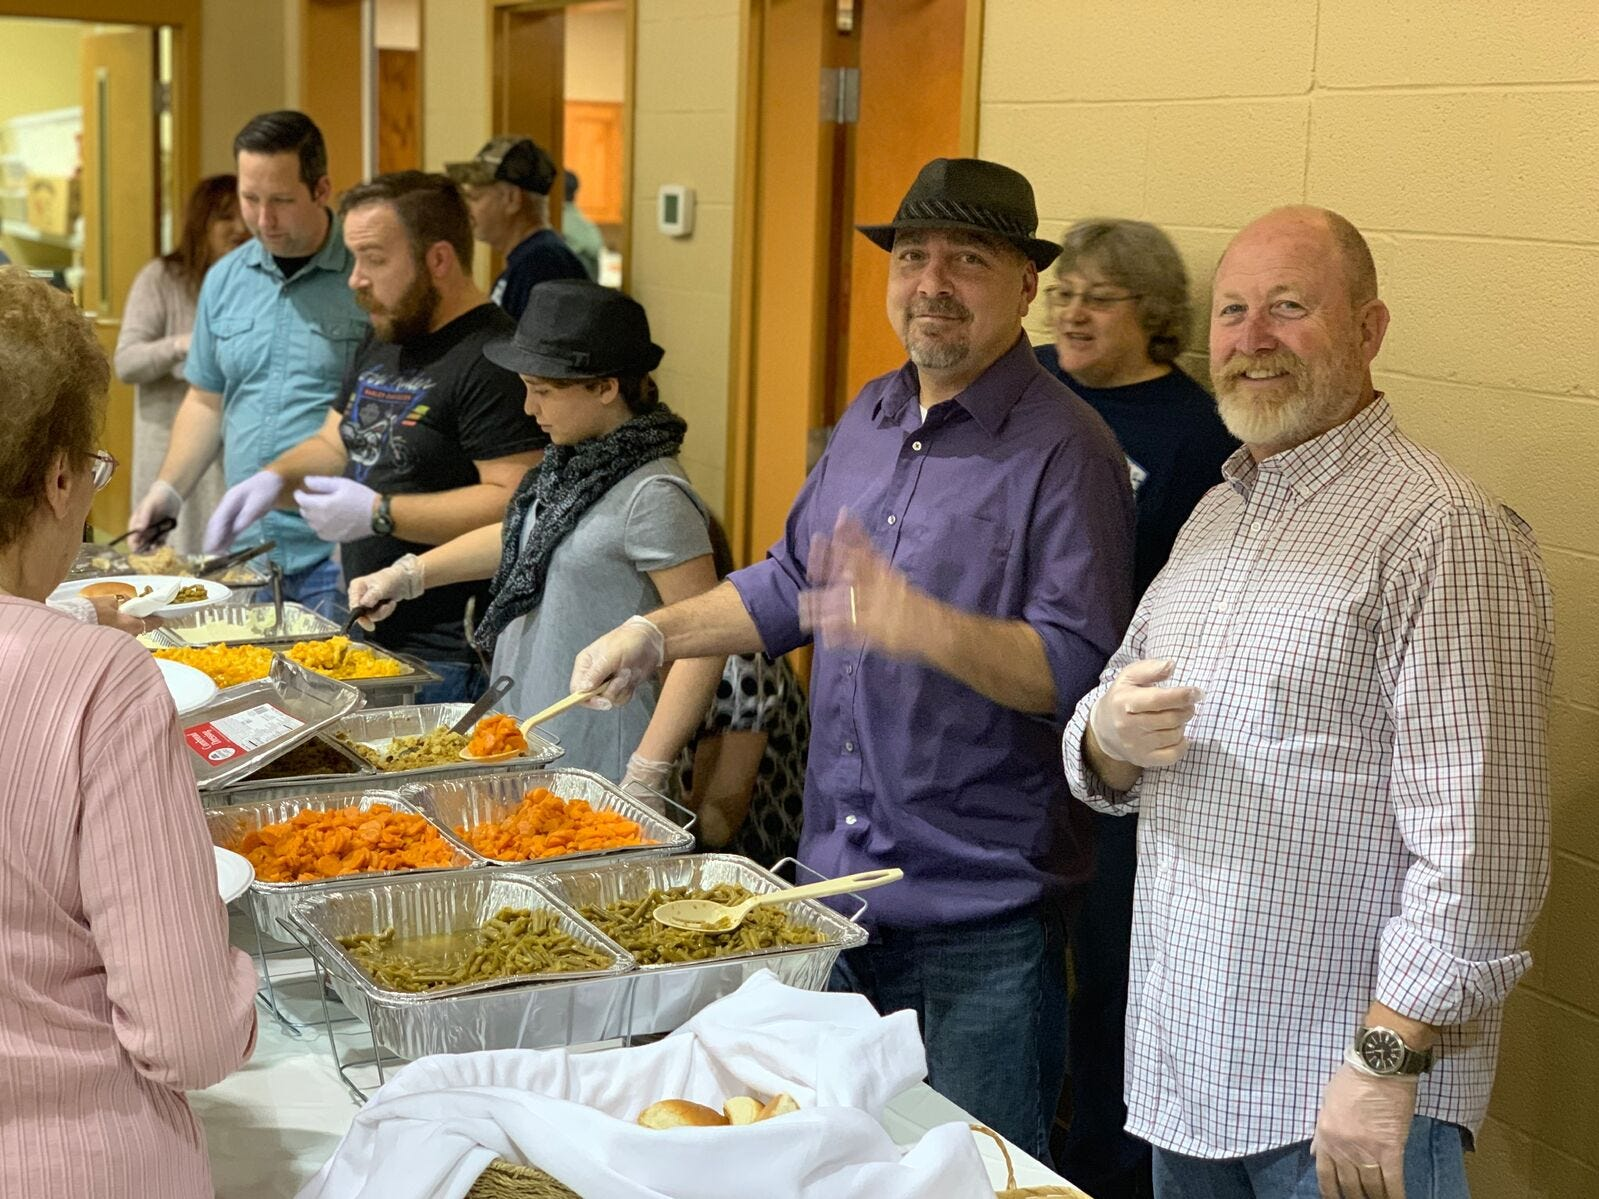 The Cheatham Ministerial Association hosted a free community Thanksgiving dinner at Gateway Church Assembly of God in Ashland City.